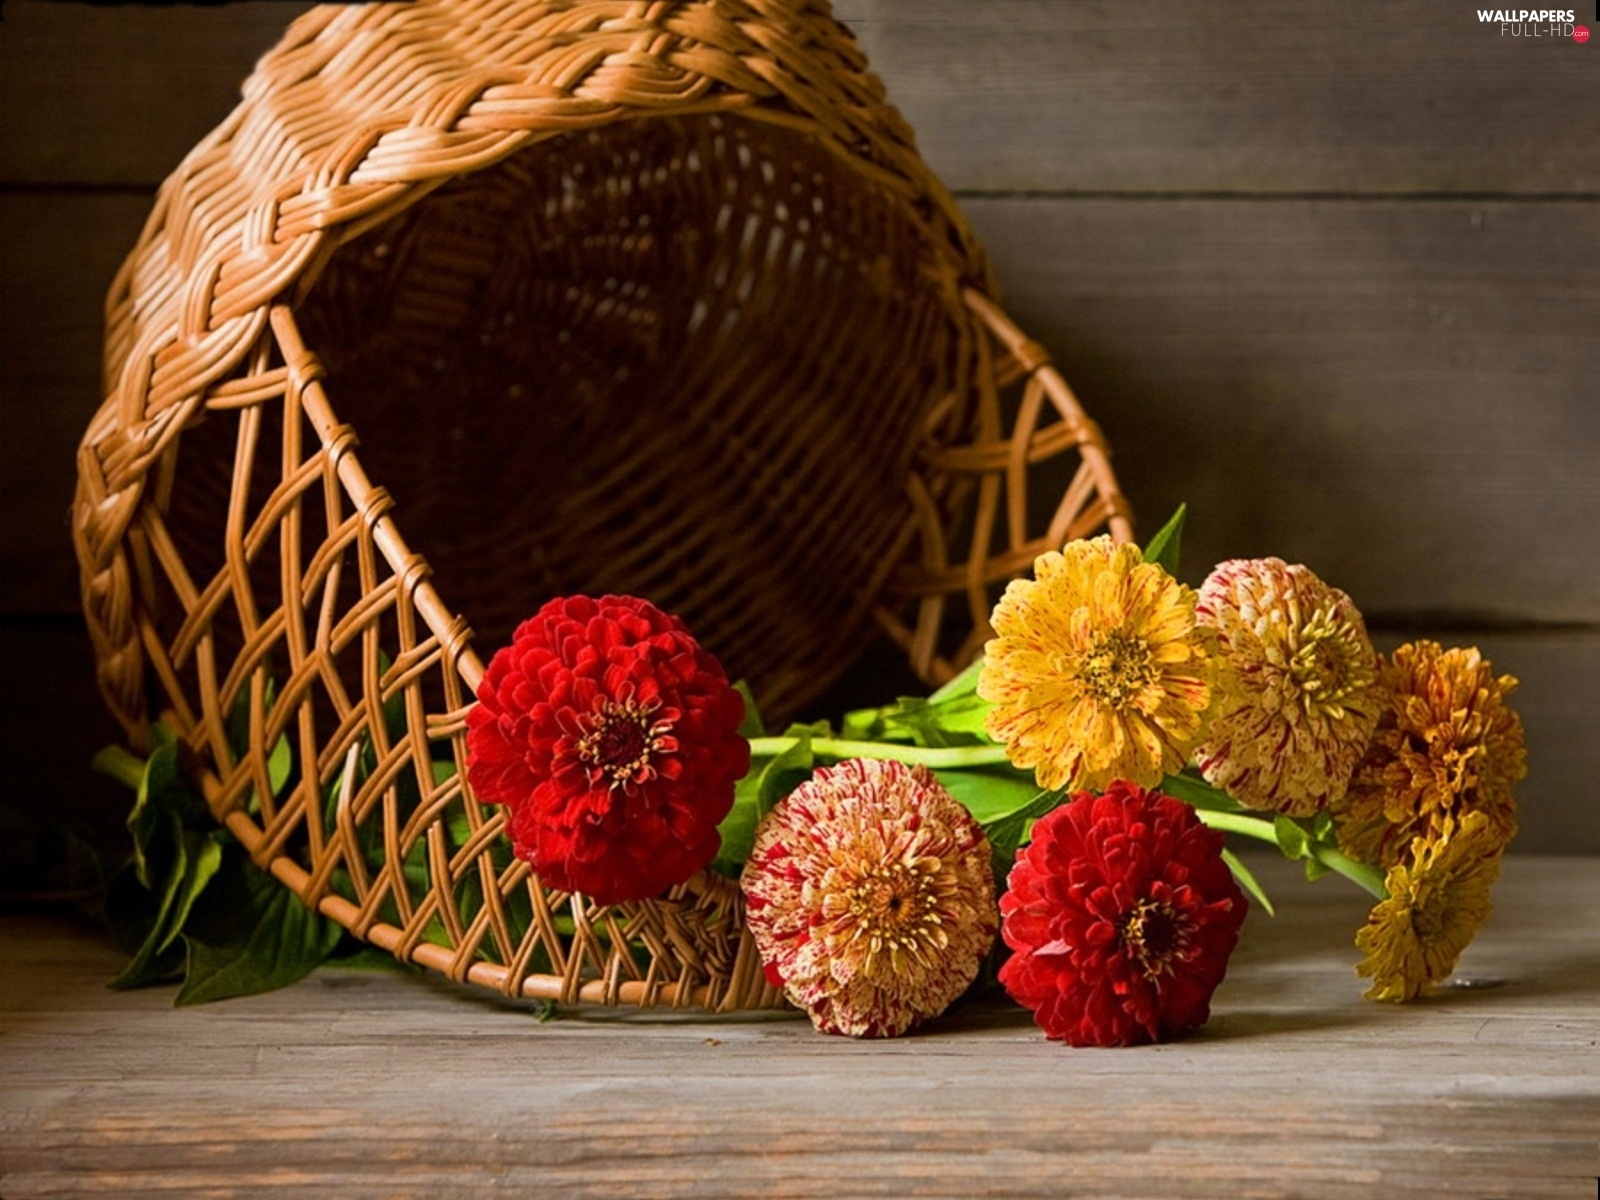 color, Flowers, basket